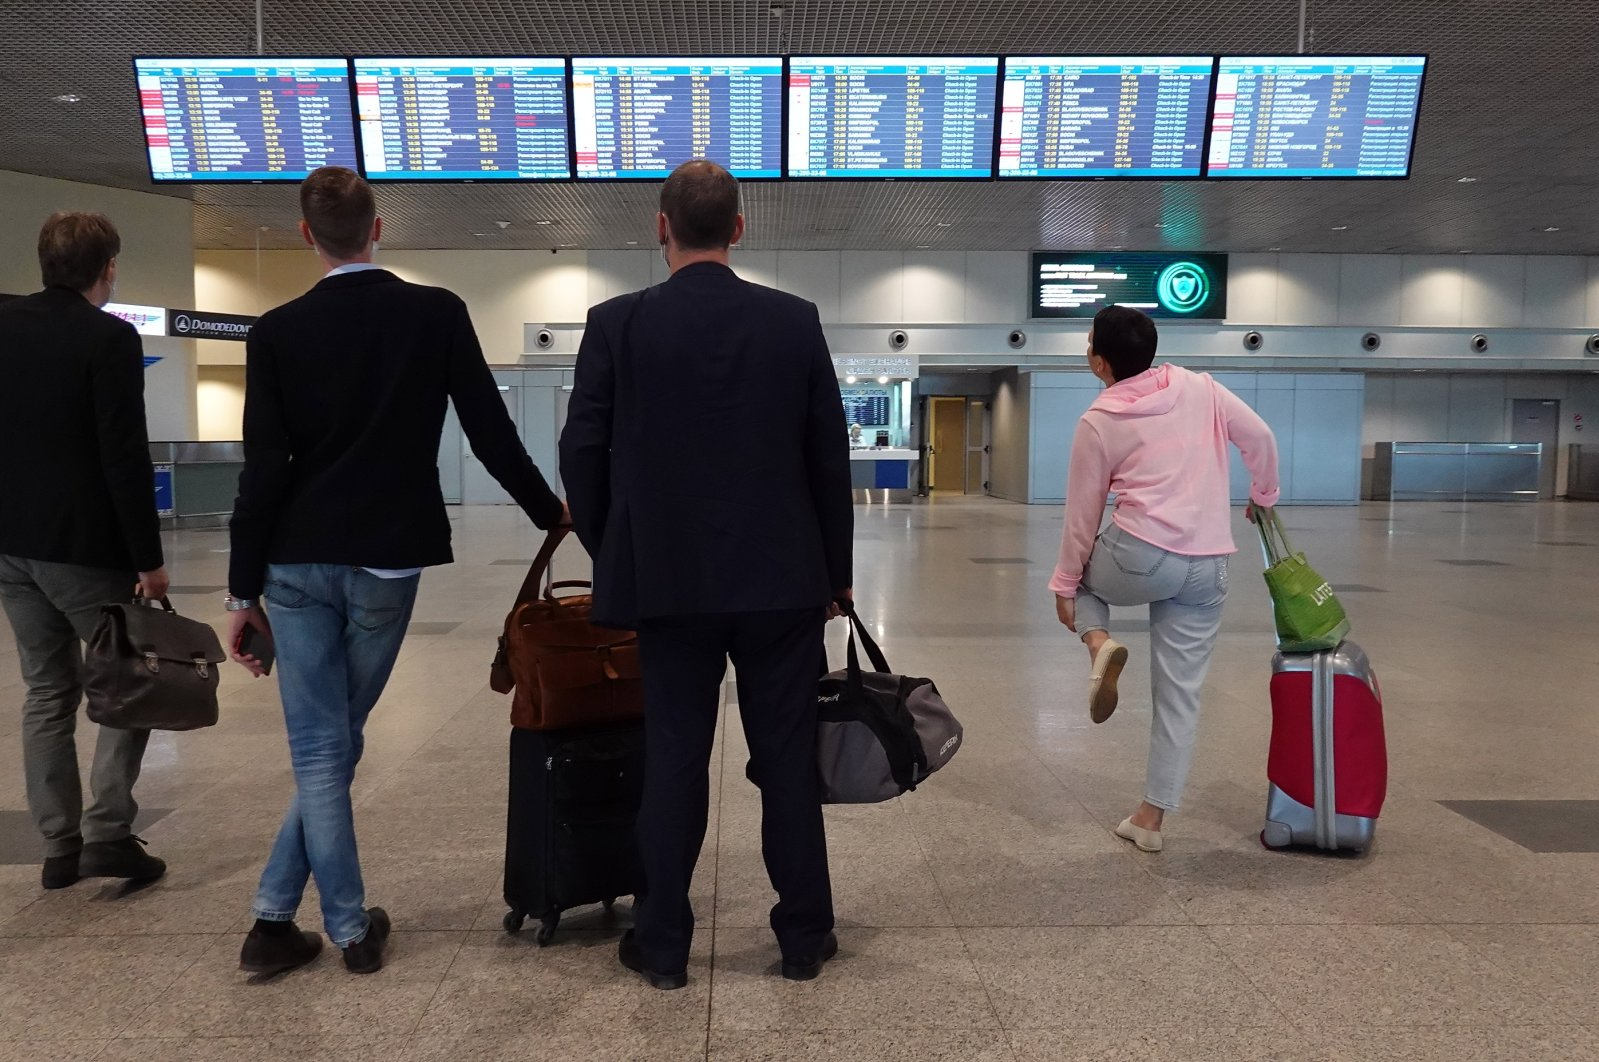 People look at the information board at Domodedovo Airport in Moscow, Russia, June 2, 2021. (EPA Photo)